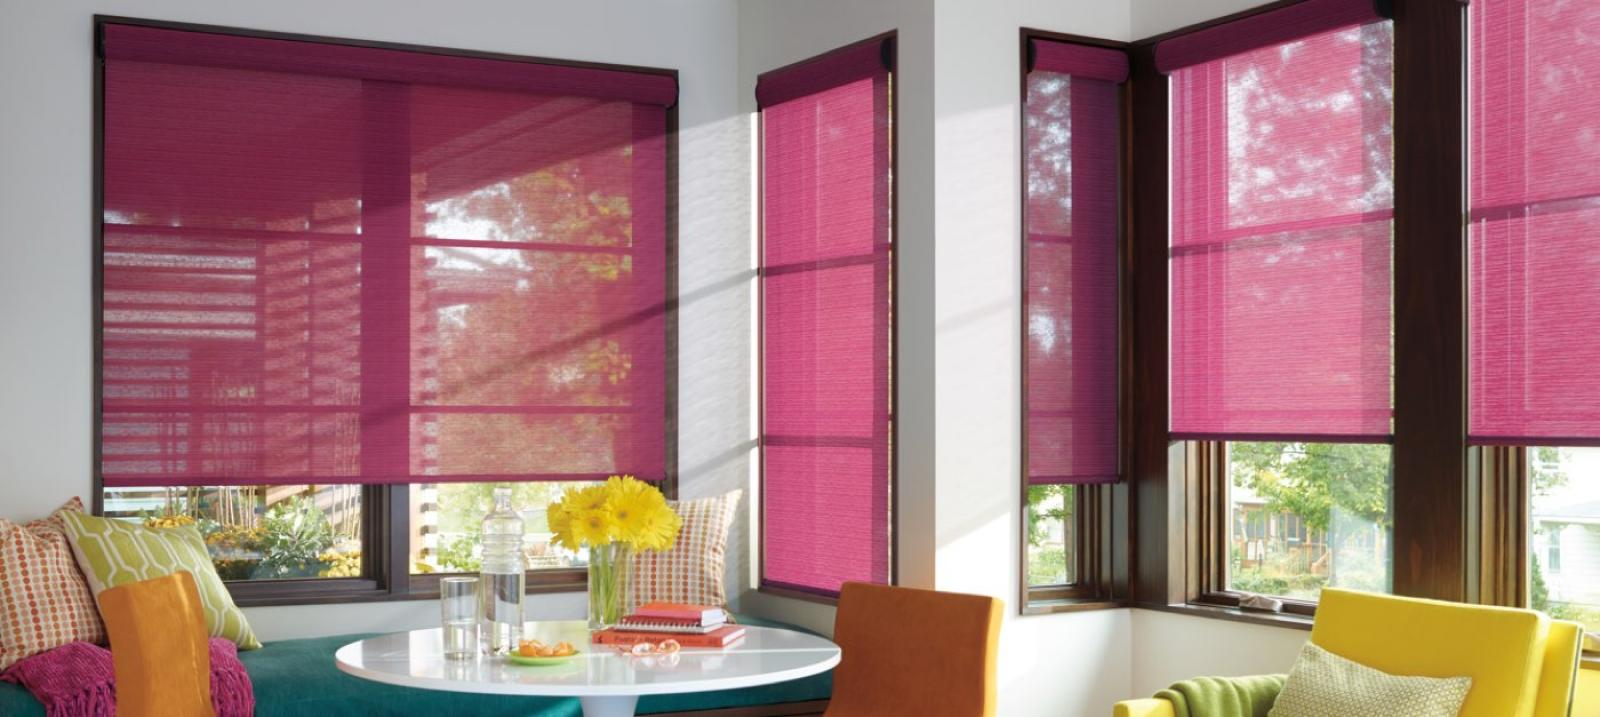 Designer Roller Shades in Fuschia